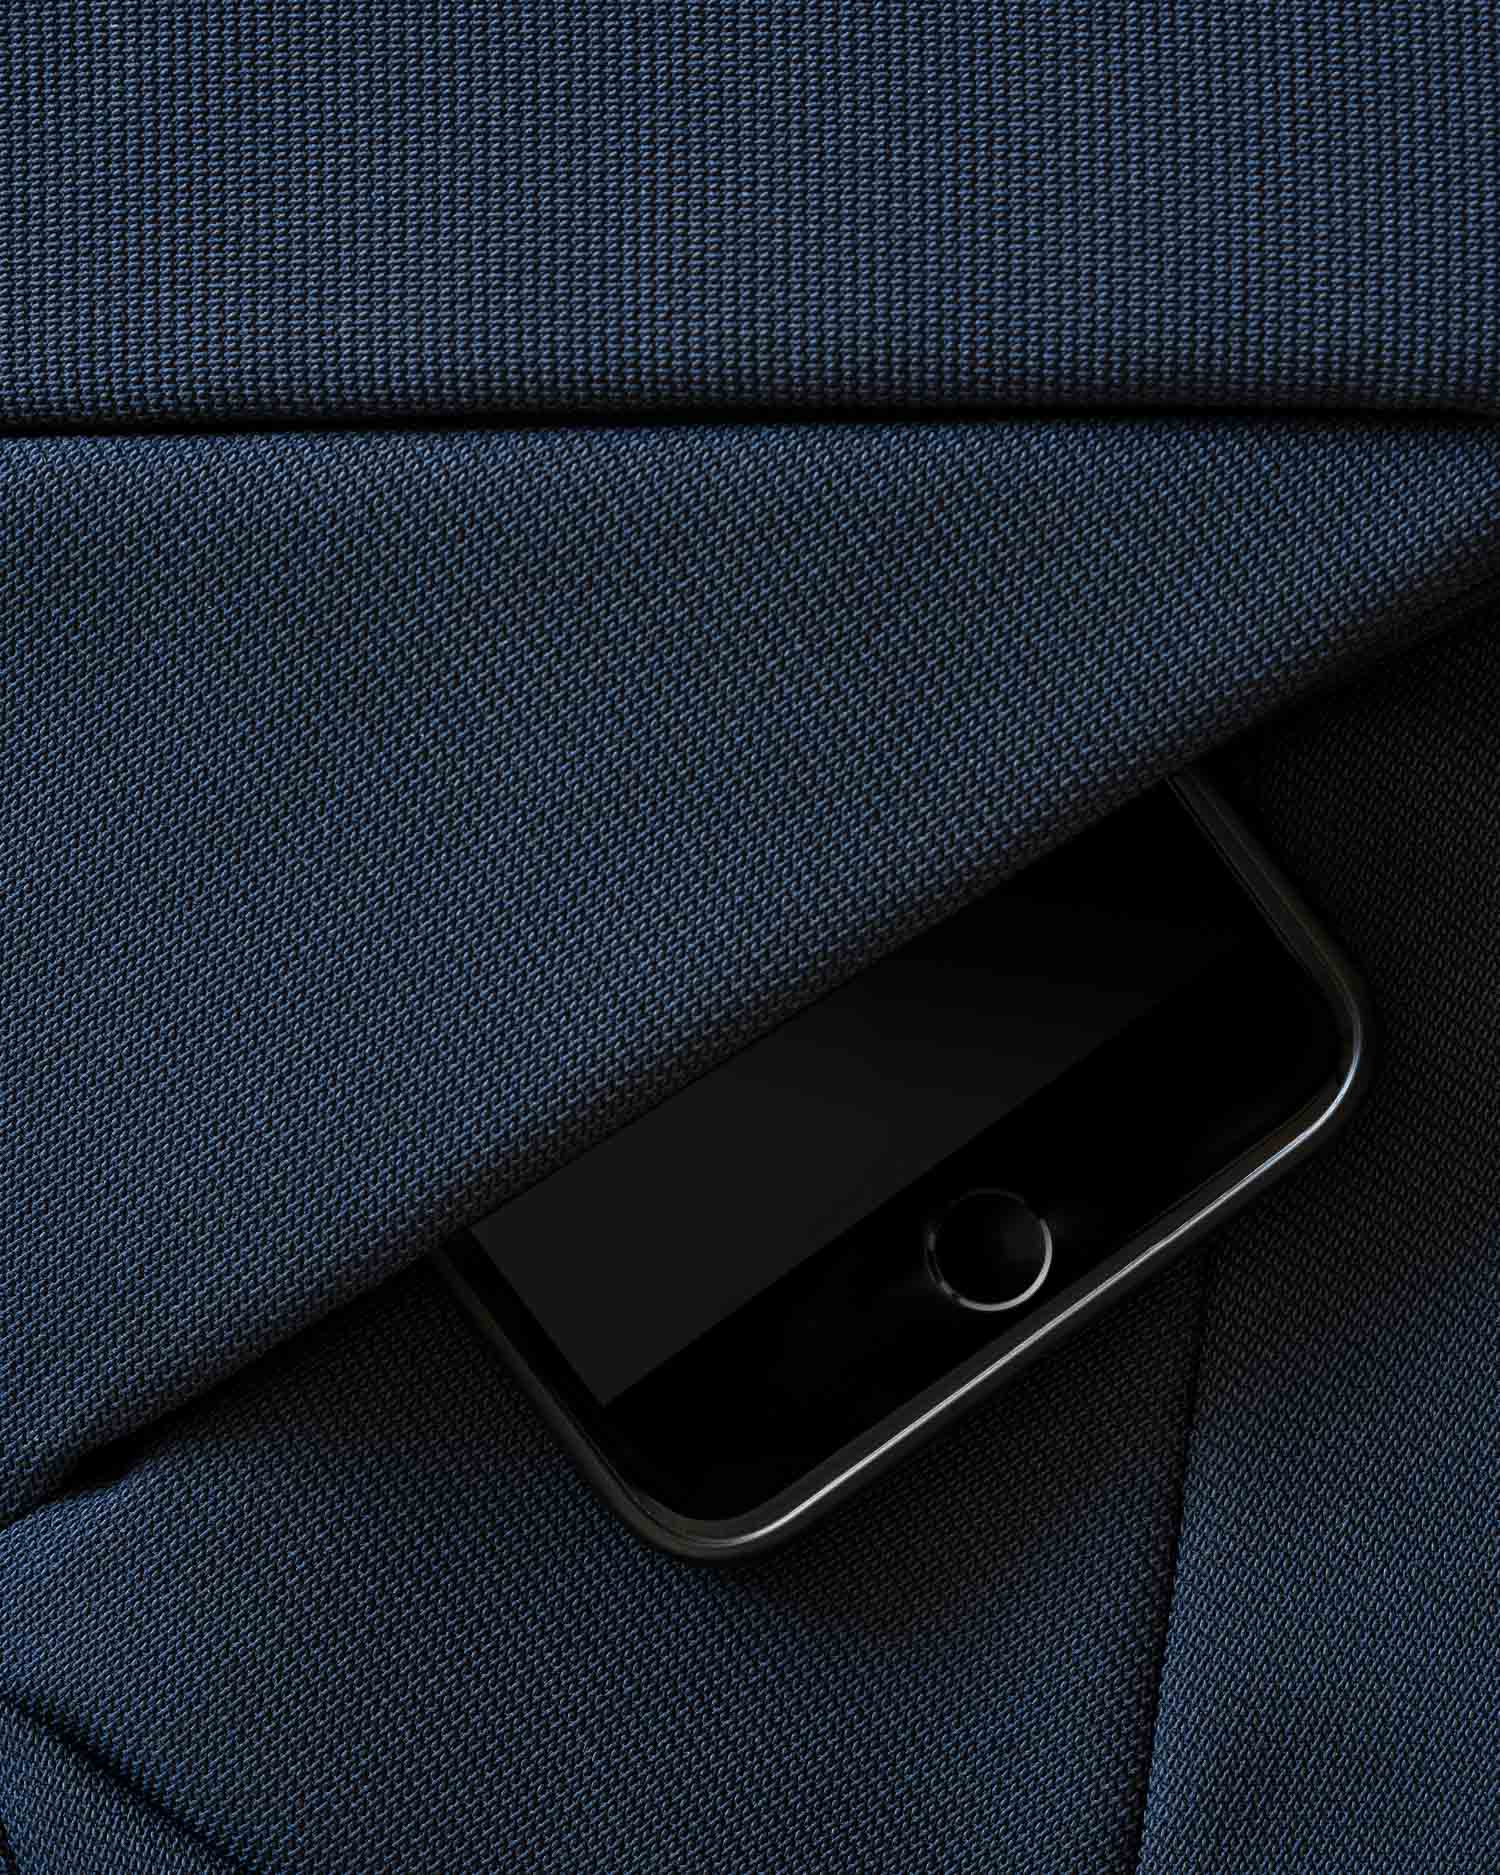 Scholler innovative textile for Baggizmo bag with iPhone sticking out of the pocket